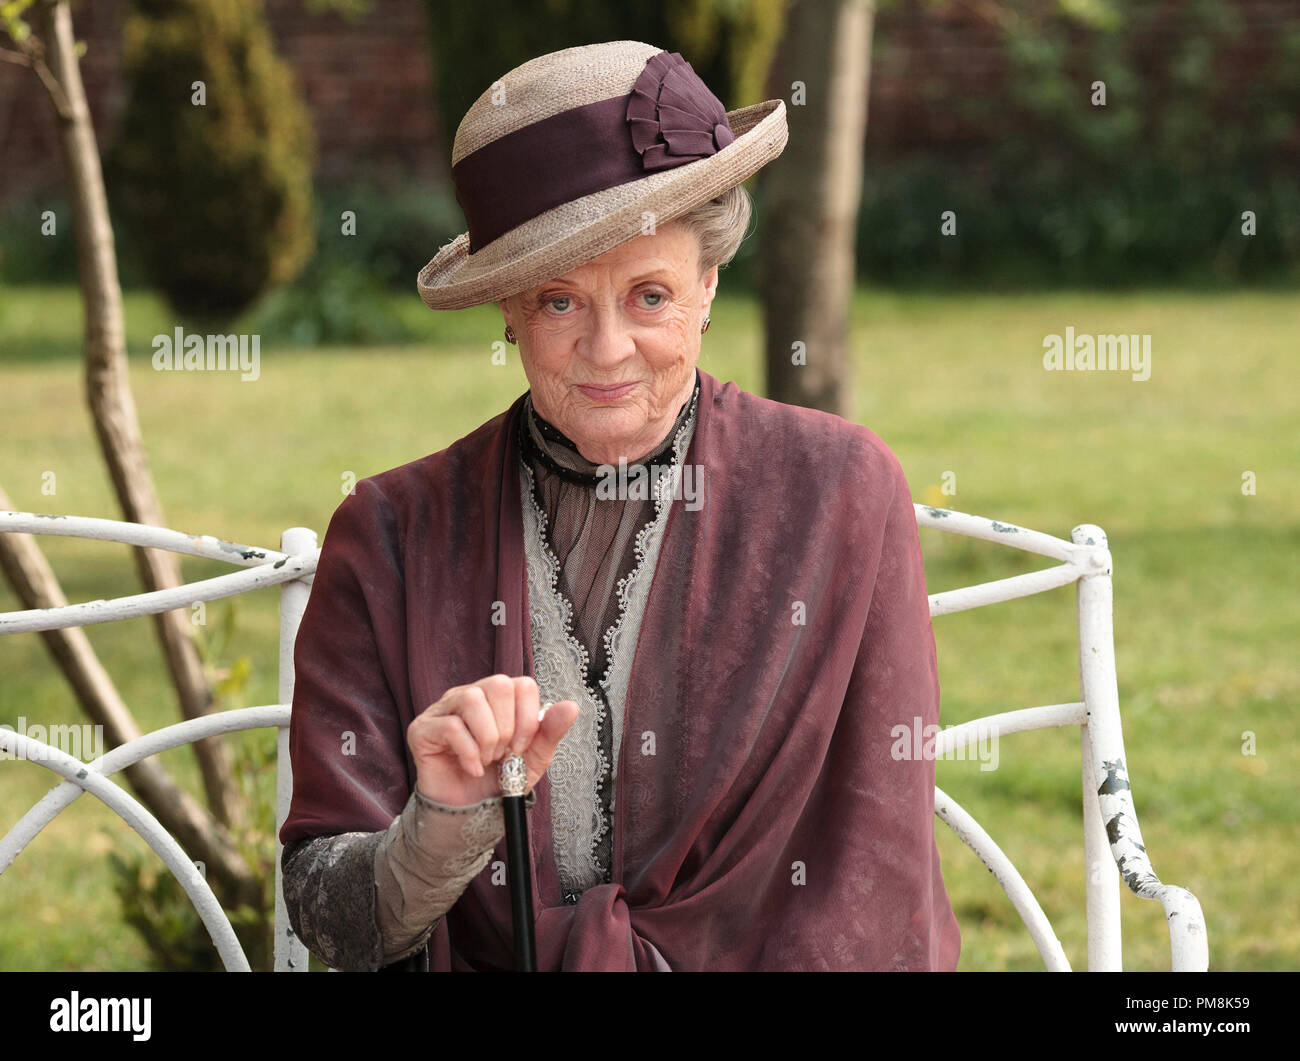 Downton Abbey Season 2 - Episode 3 Shown: Dame Maggie Smith as the Dowager Countess - Stock Image